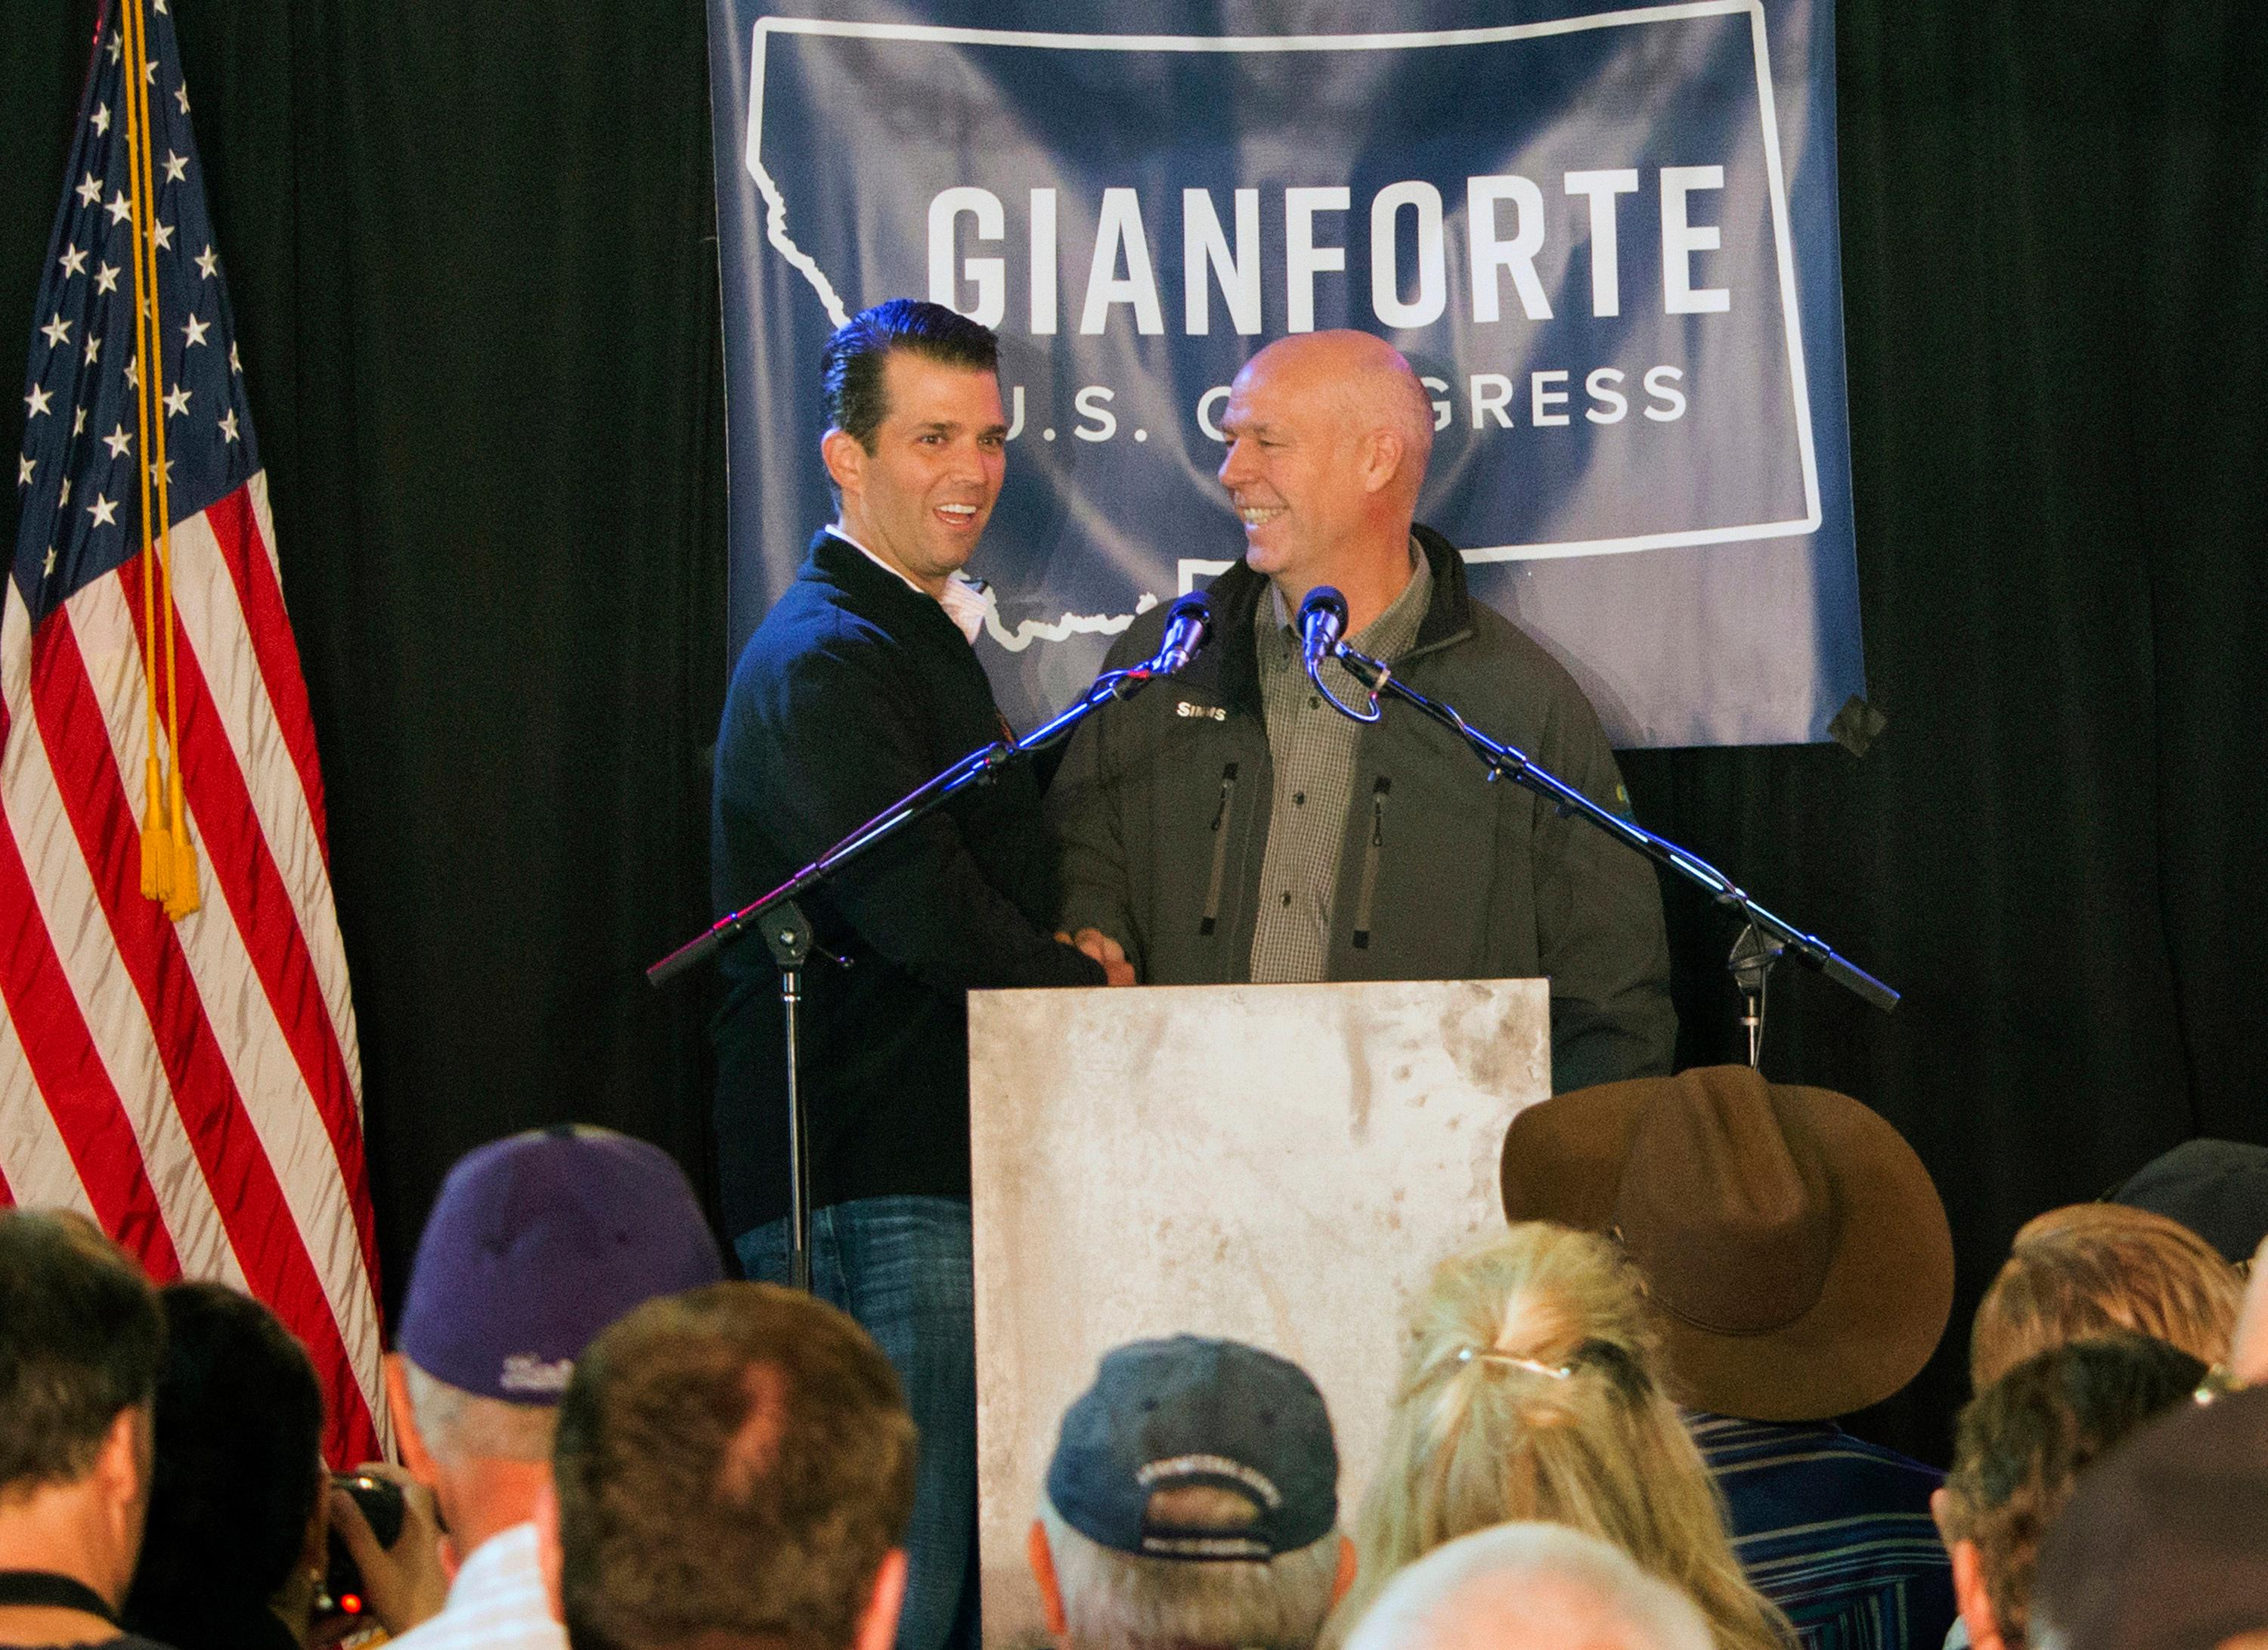 FILE - In this May 11, 2017, file photo Republican Greg Gianforte, right, welcomes Donald Trump Jr., the U.S. president's son, onto the stage at a rally in East Helena, Mont. Gianforte won Montana's only U.S. House seat on Thursday, May 25, despite being charged a day earlier with assault after witnesses said he grabbed a reporter by the neck and threw him to the ground. (AP Photo/Bobby Caina Calvan, File)